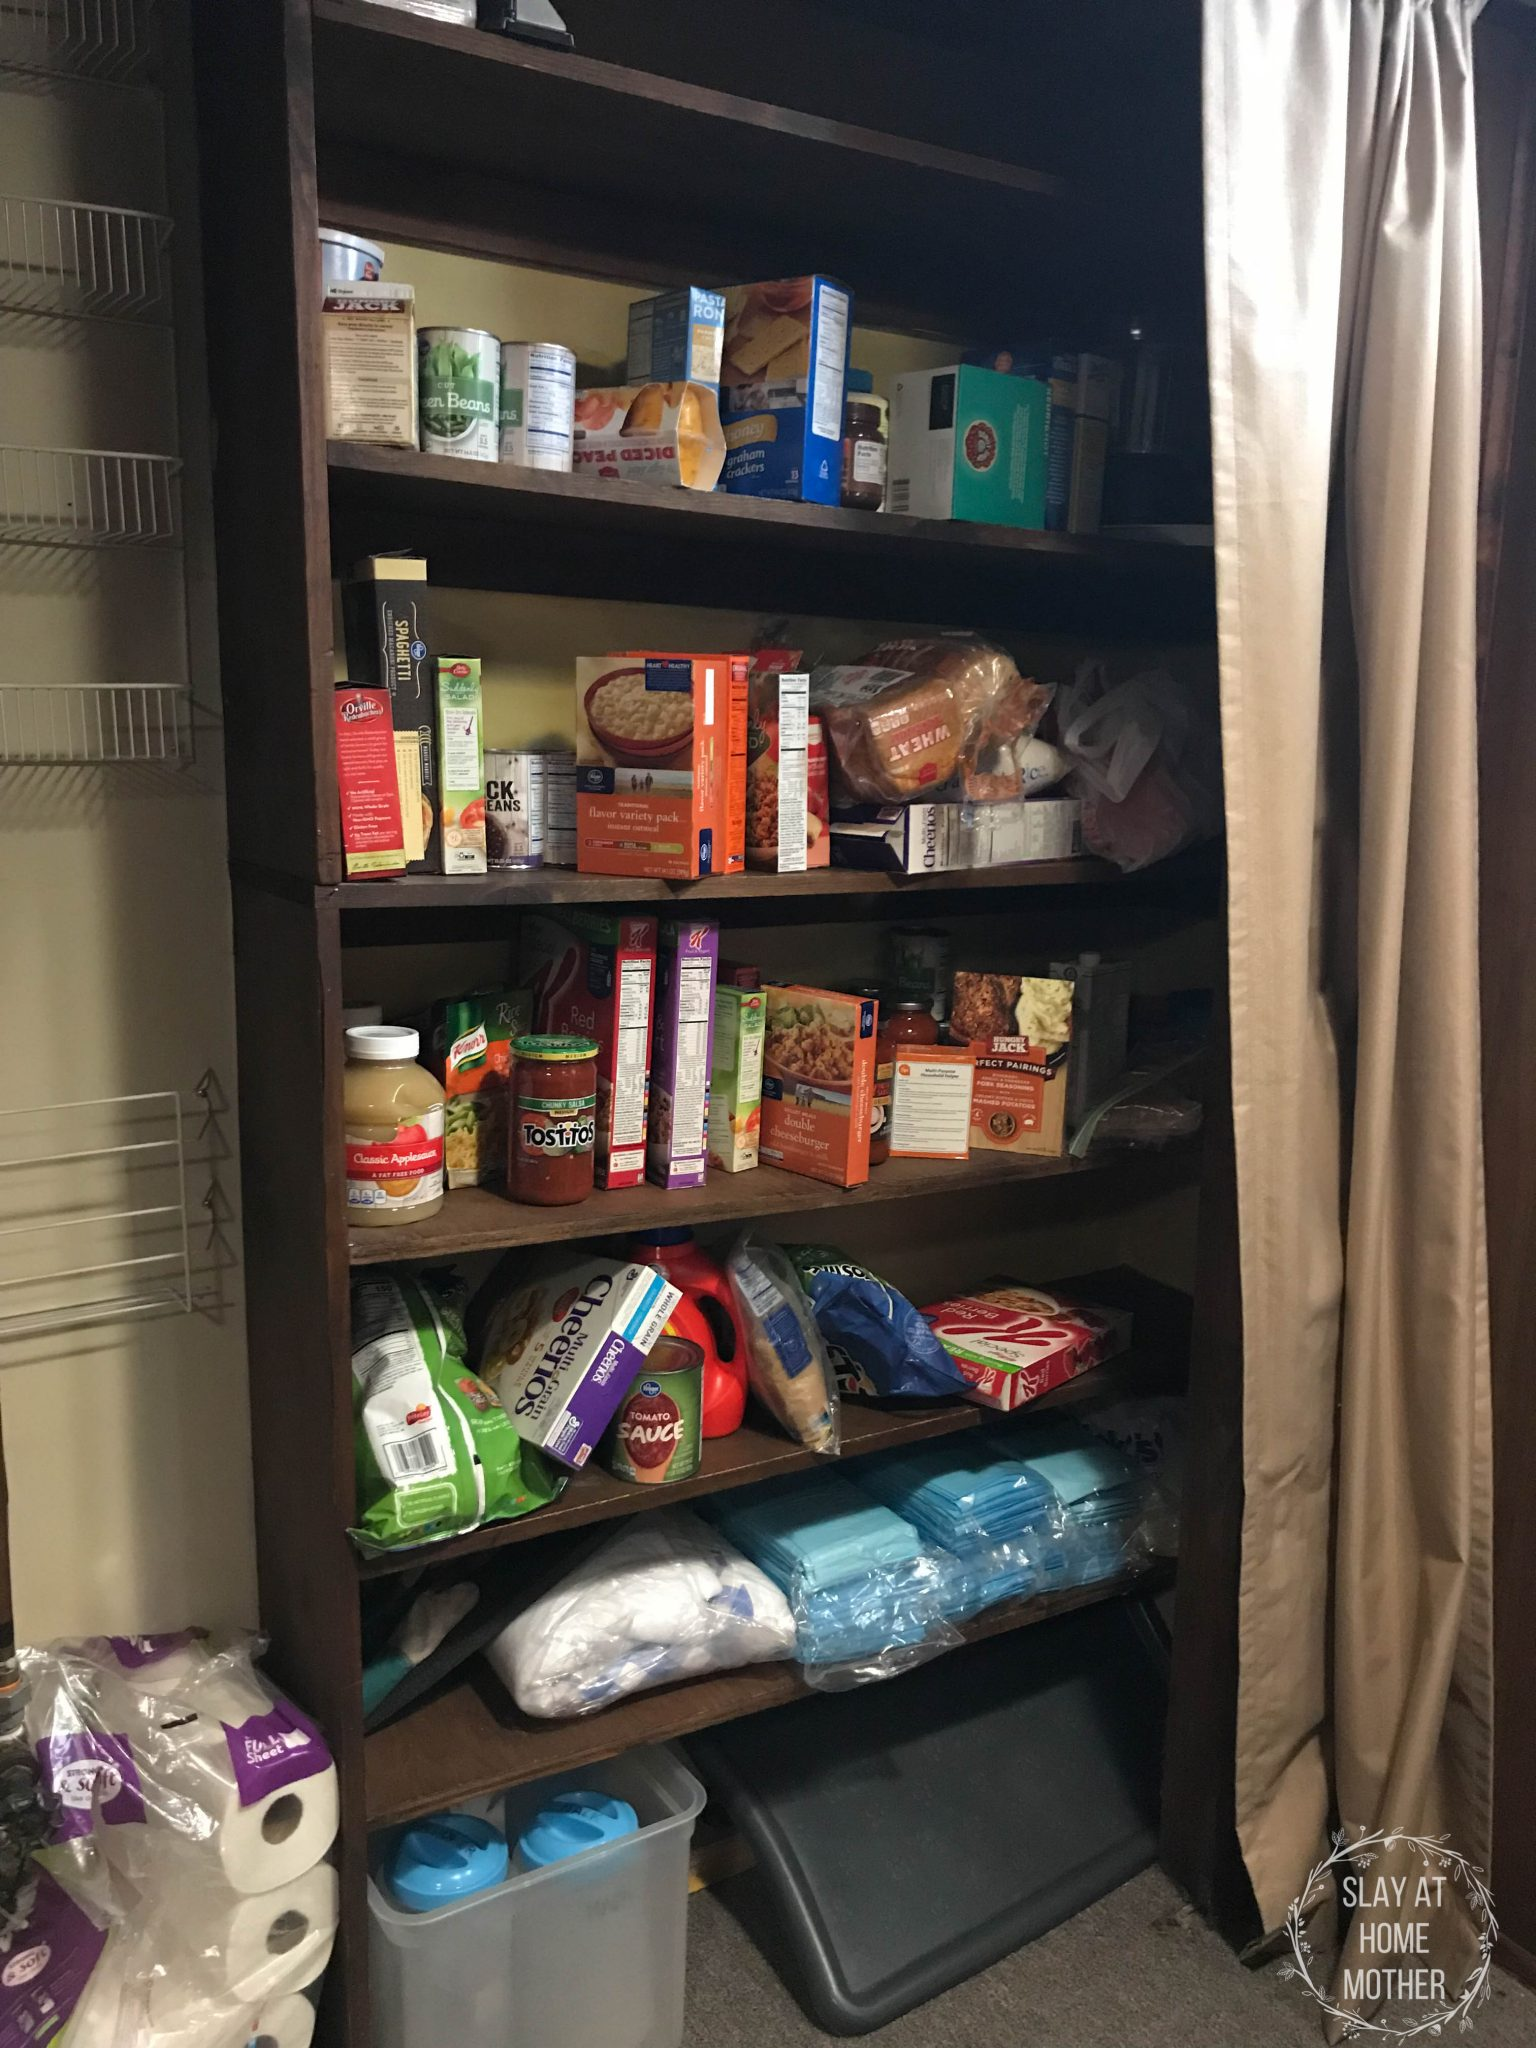 A side view of my messy pantry with brown shelves, tan curtains, and yellow walls